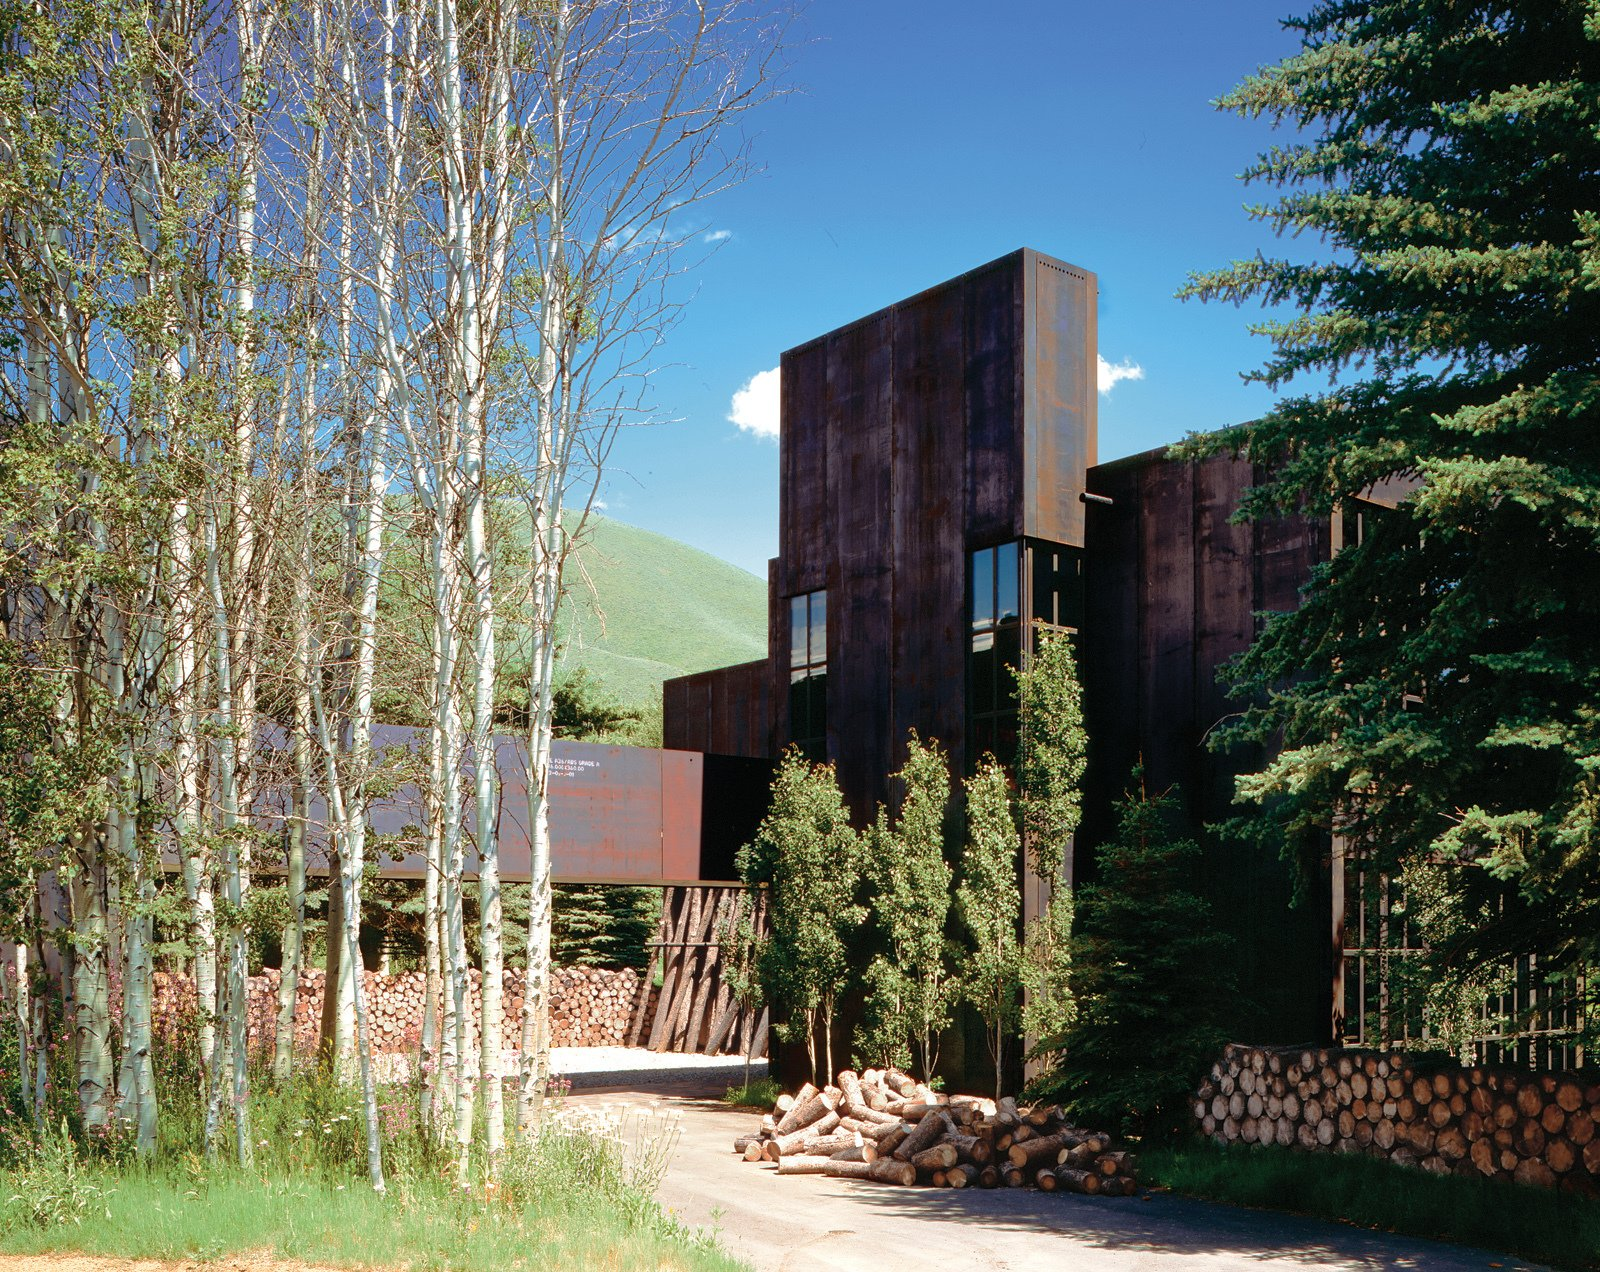 A steel-plate-clad house by architect Susan Desko in Ketchum, Idaho, features an untreated surface that changes color to reflect the sky.  Photo 3 of 3 in Facade Focus: Steel